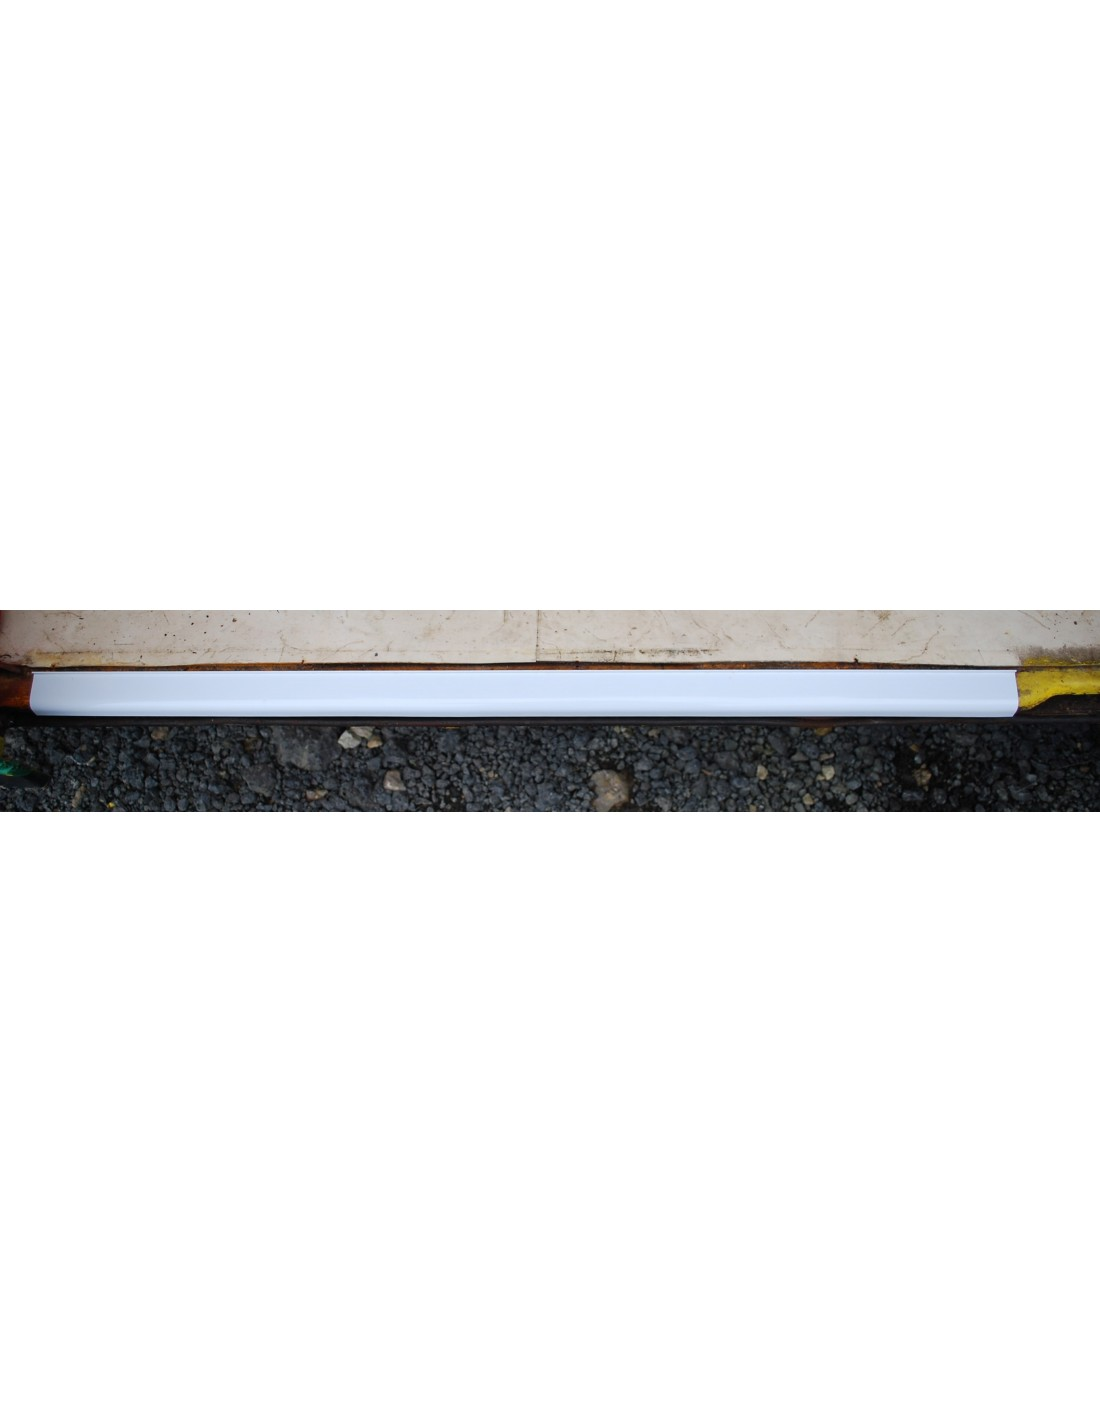 White Floor Edge Trim For Sliding Door Step Nla Vw Parts